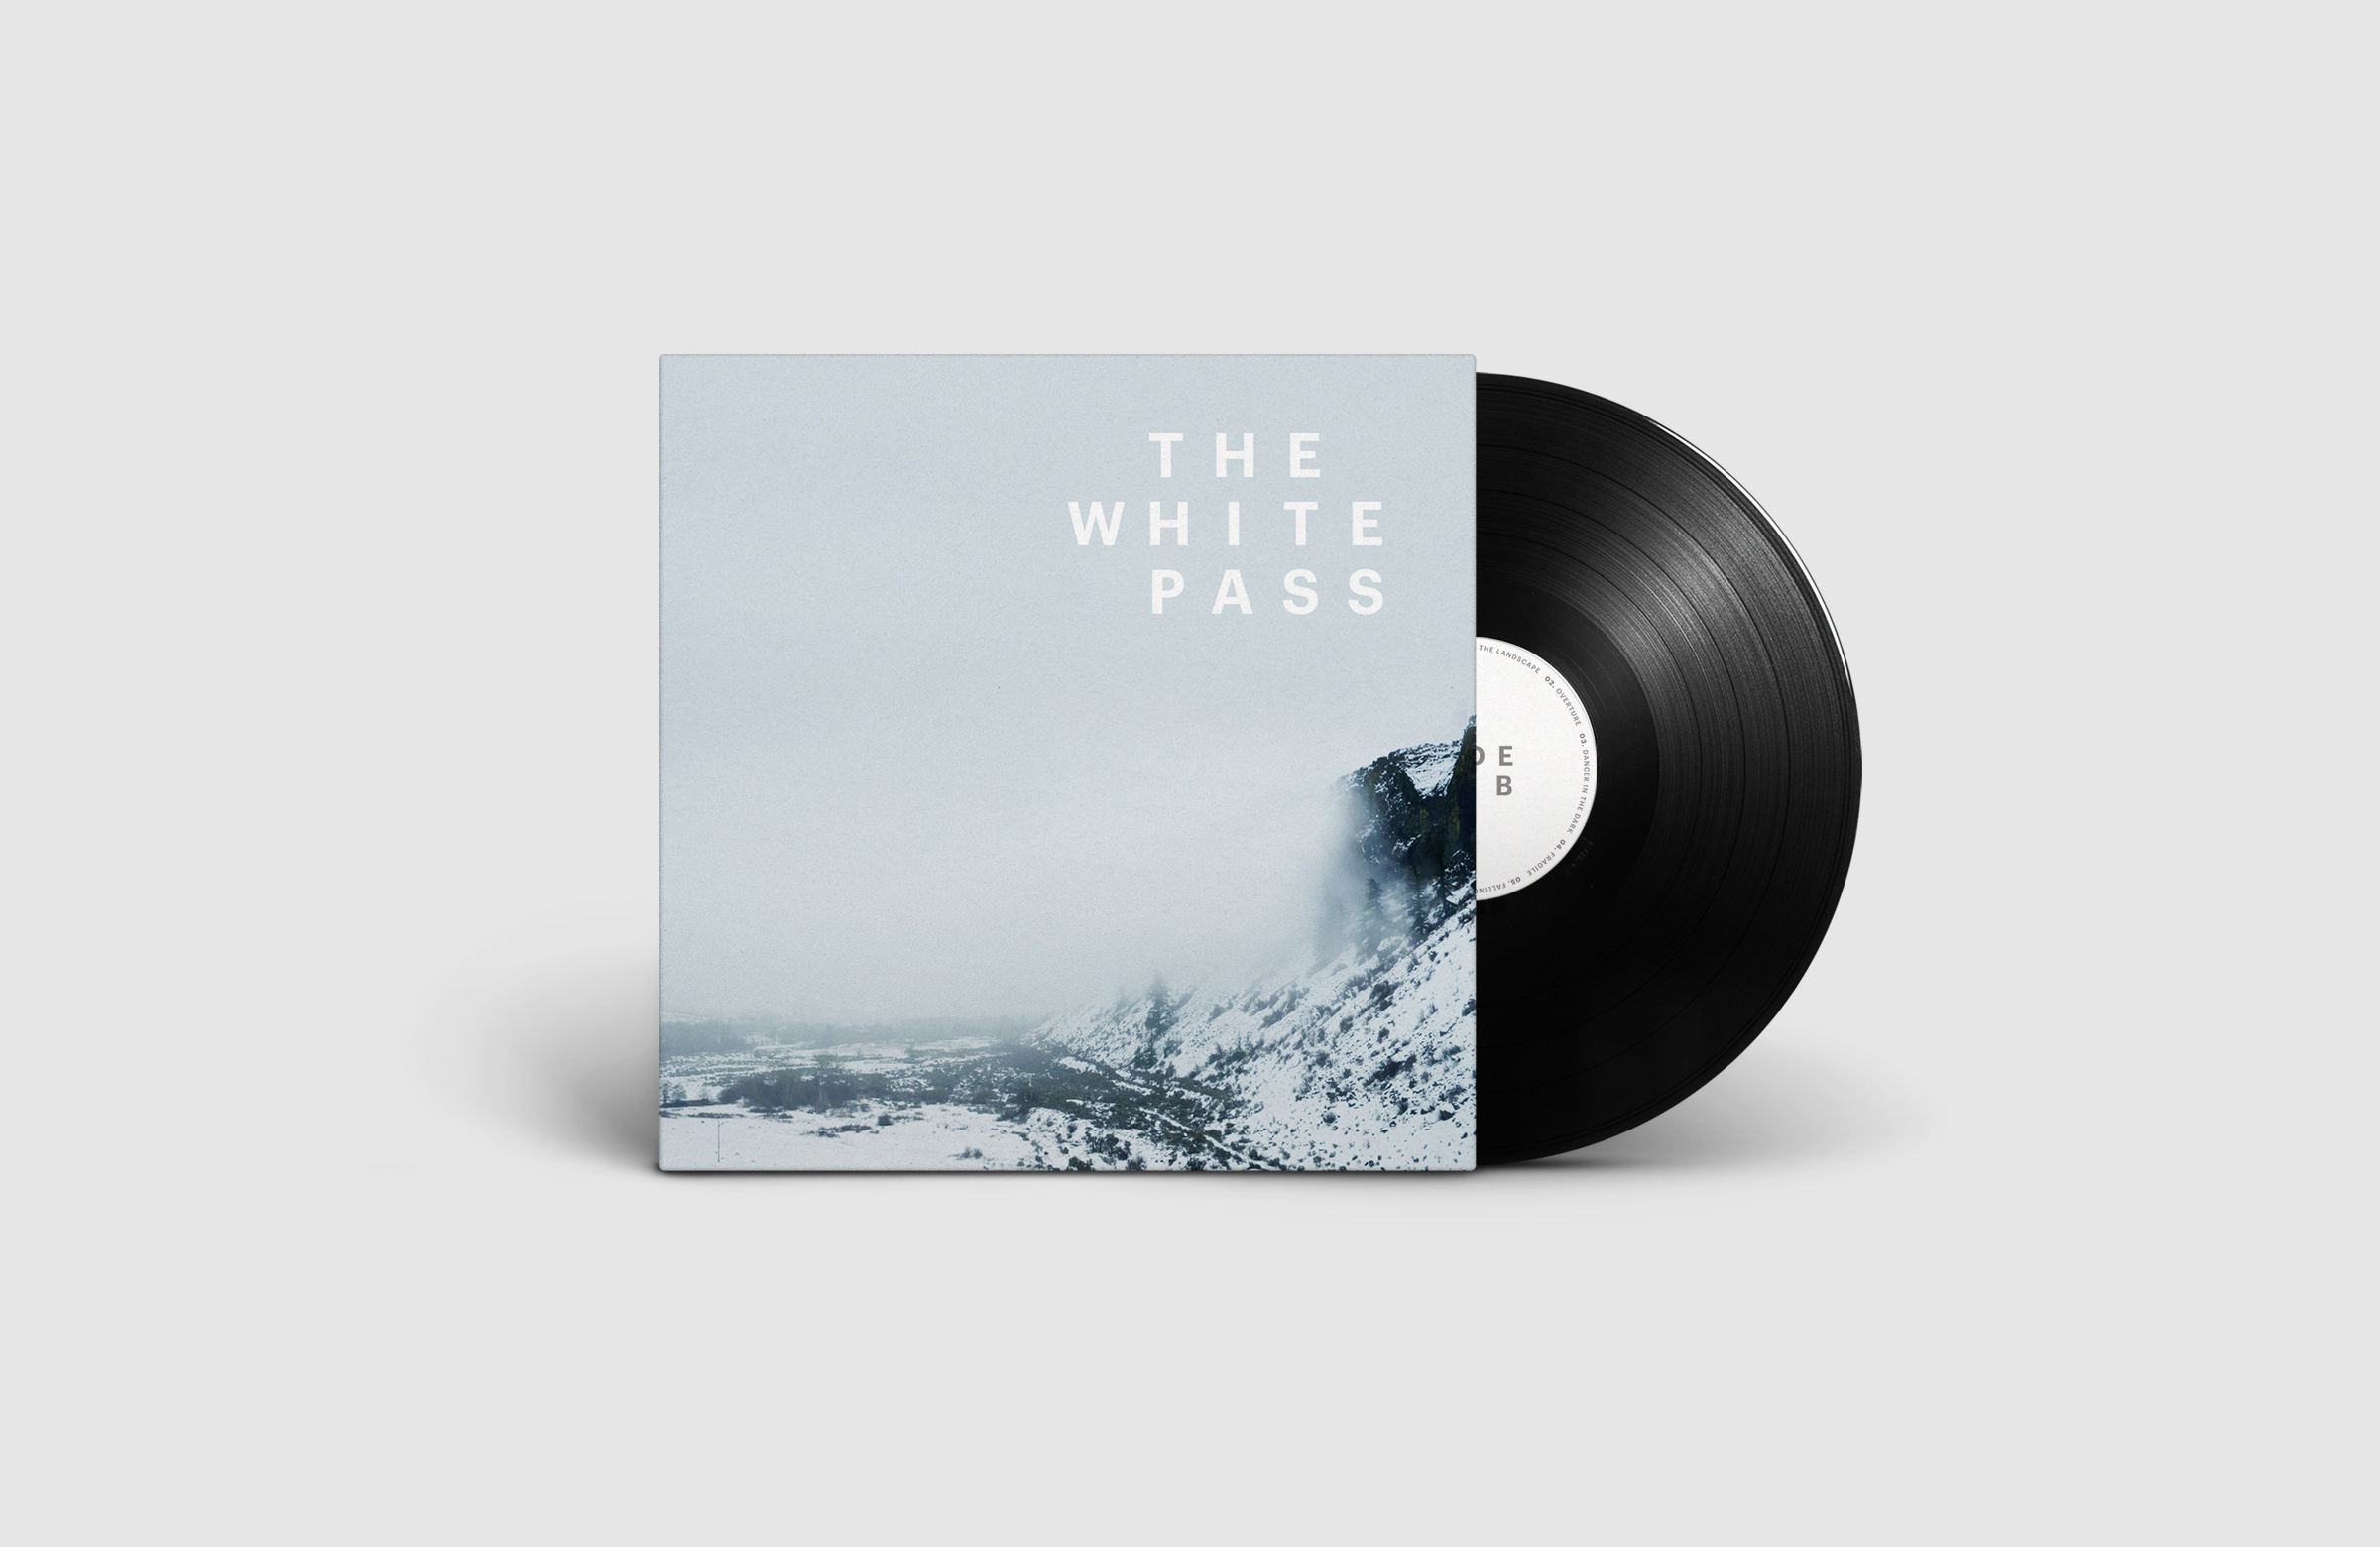 All Works Co._Graphic_Design_Studio_London_TheWhitePass_Film_Soundtrack_Vinyl_Record_Cover